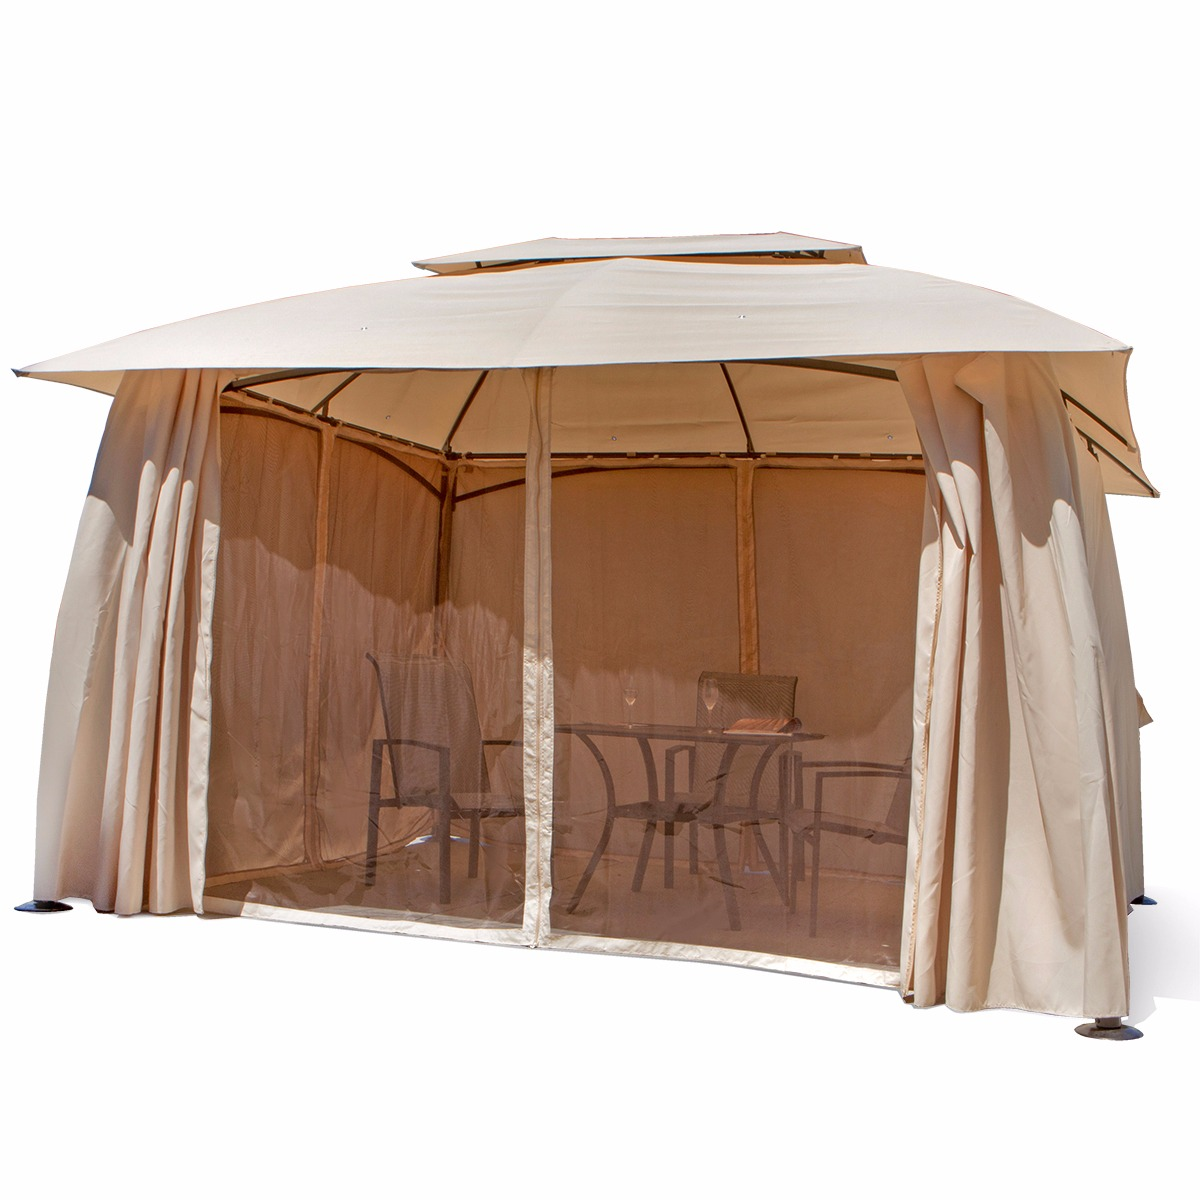 10u0027 x 13u0027 Outdoor Backyard Patio Gazebo Canopy Tent with Netting - Walmart.com  sc 1 st  Walmart.com & 10u0027 x 13u0027 Outdoor Backyard Patio Gazebo Canopy Tent with Netting ...